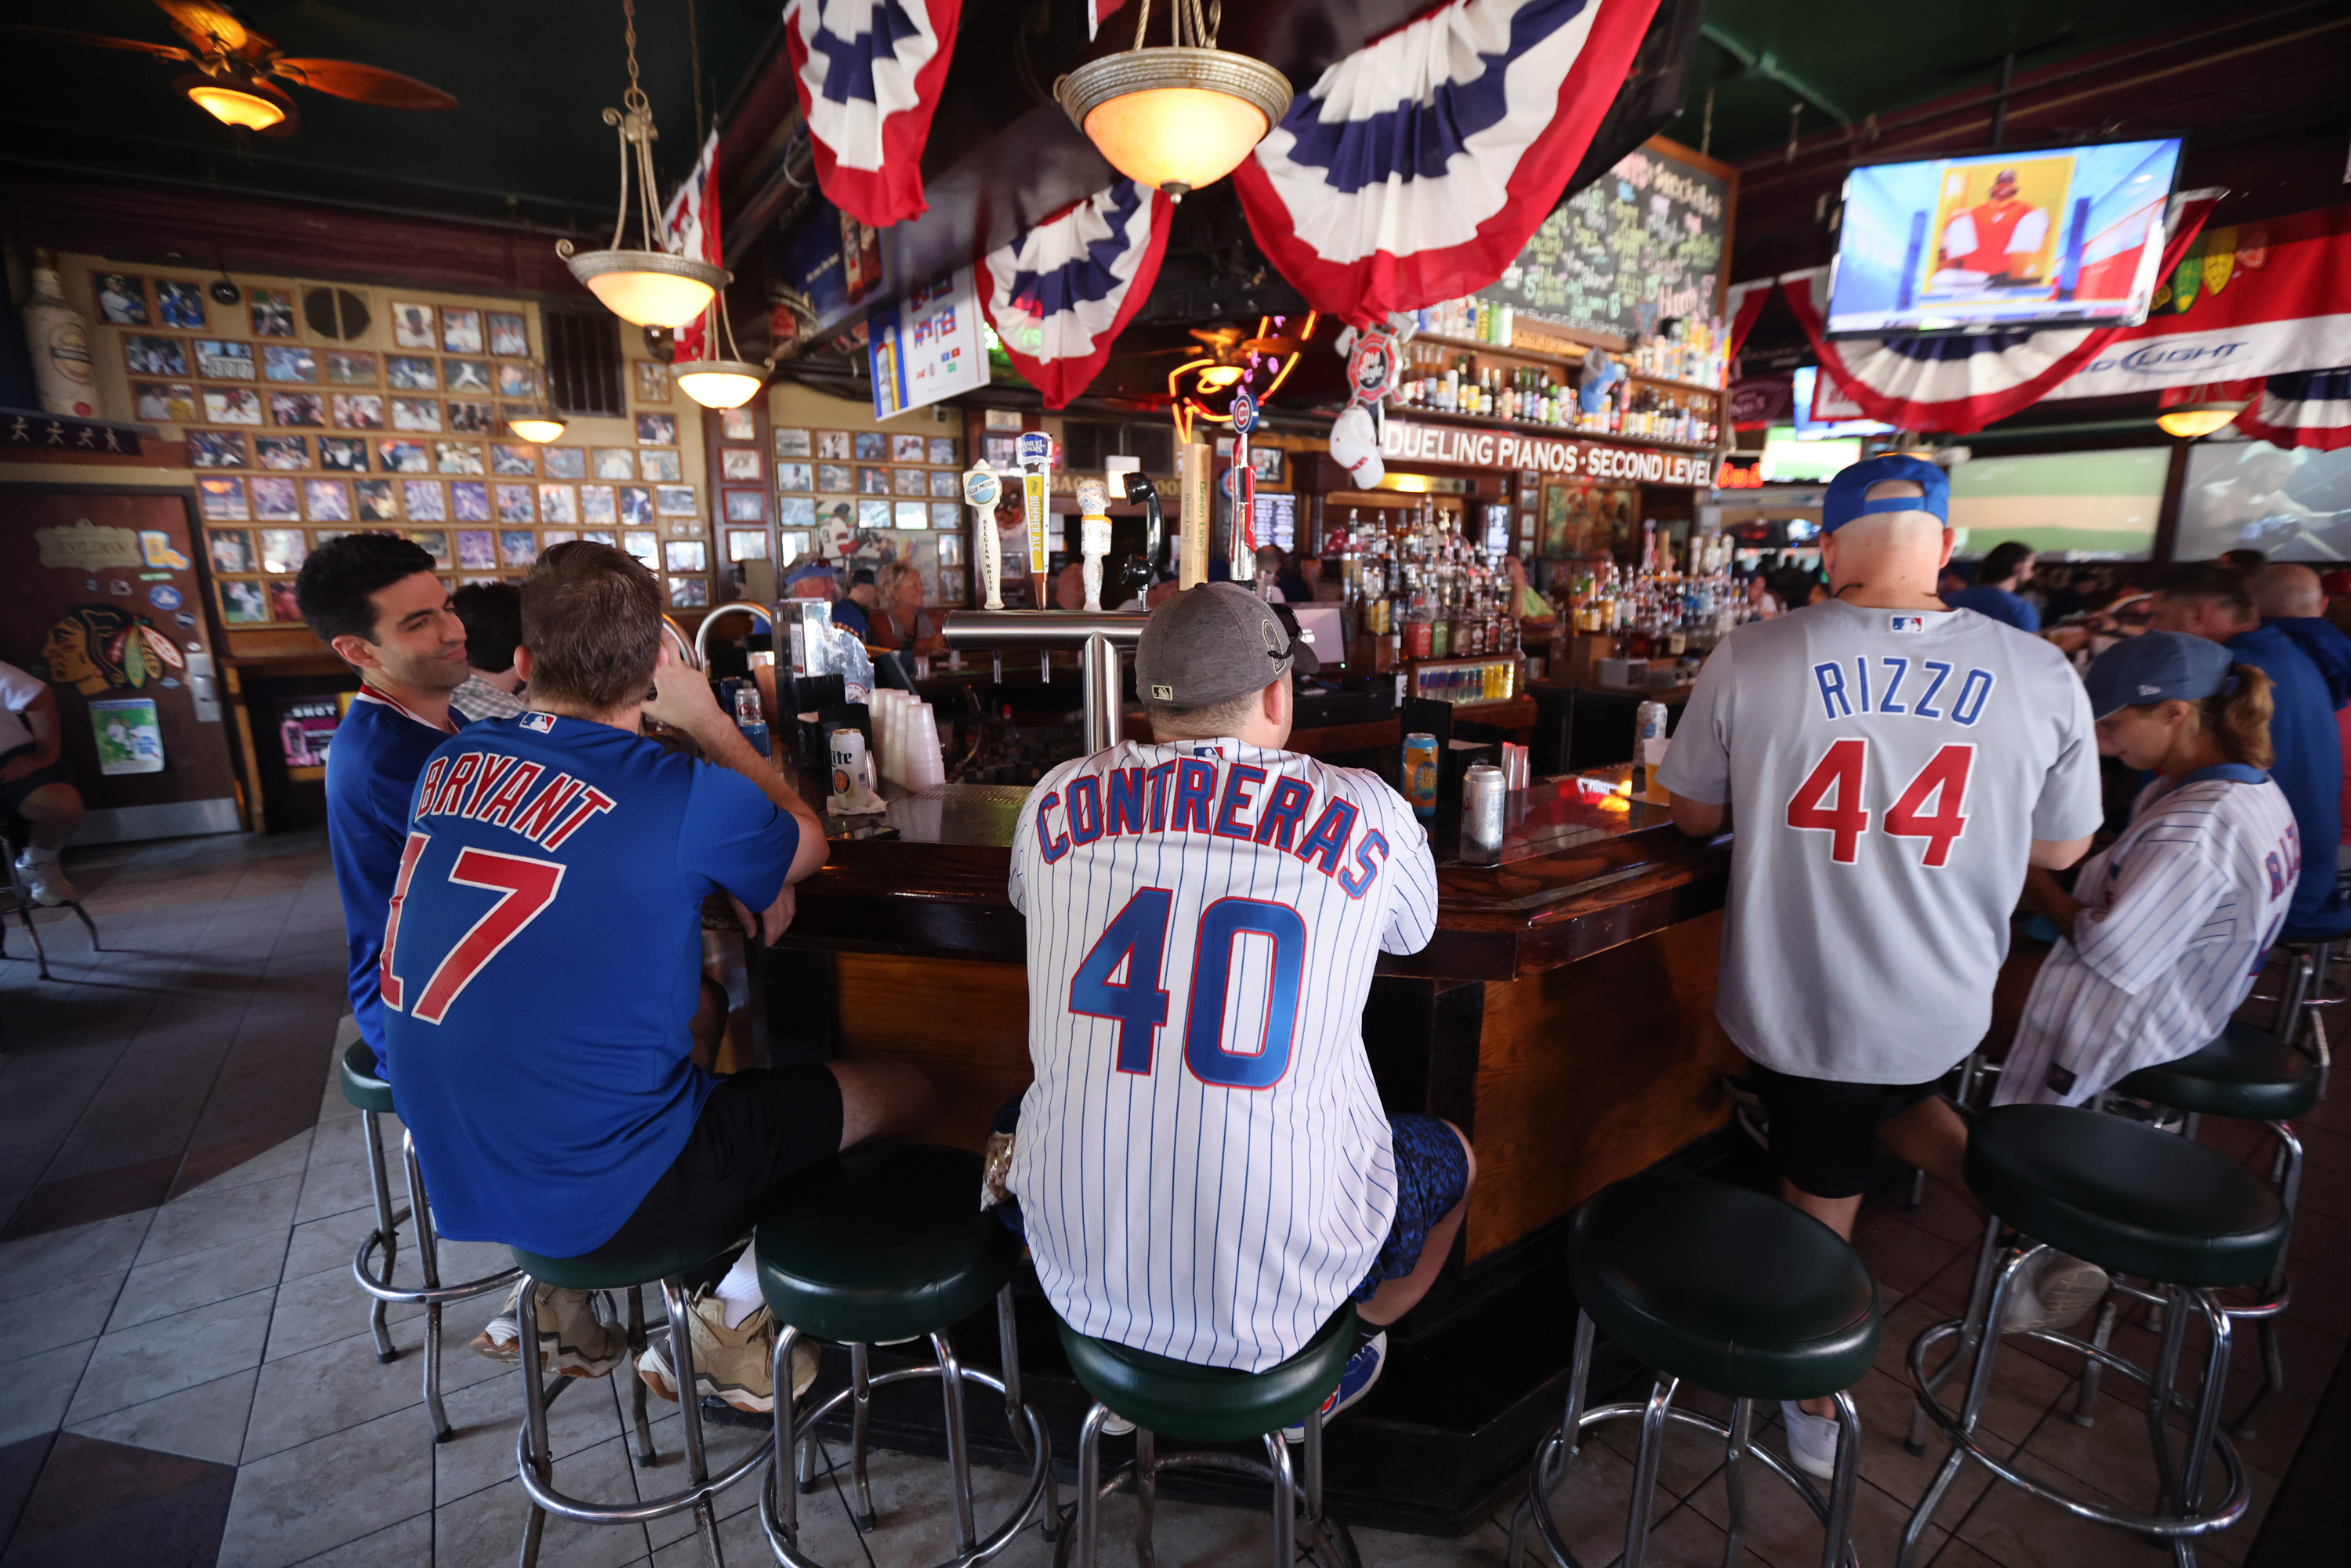 Baseball fans congregate at Sluggers sports bar across from Wrigley Field before the start of the nearly-sold-out matchup between the Chicago Cubs and the St. Louis Cardinals on June 11. In June, Chicago and the rest of the state of Illinois lifted nearly all COVID-19 restrictions, allowing for no capacity limits for bars, restaurants, gyms, or other large venues and no social distancing requirements.